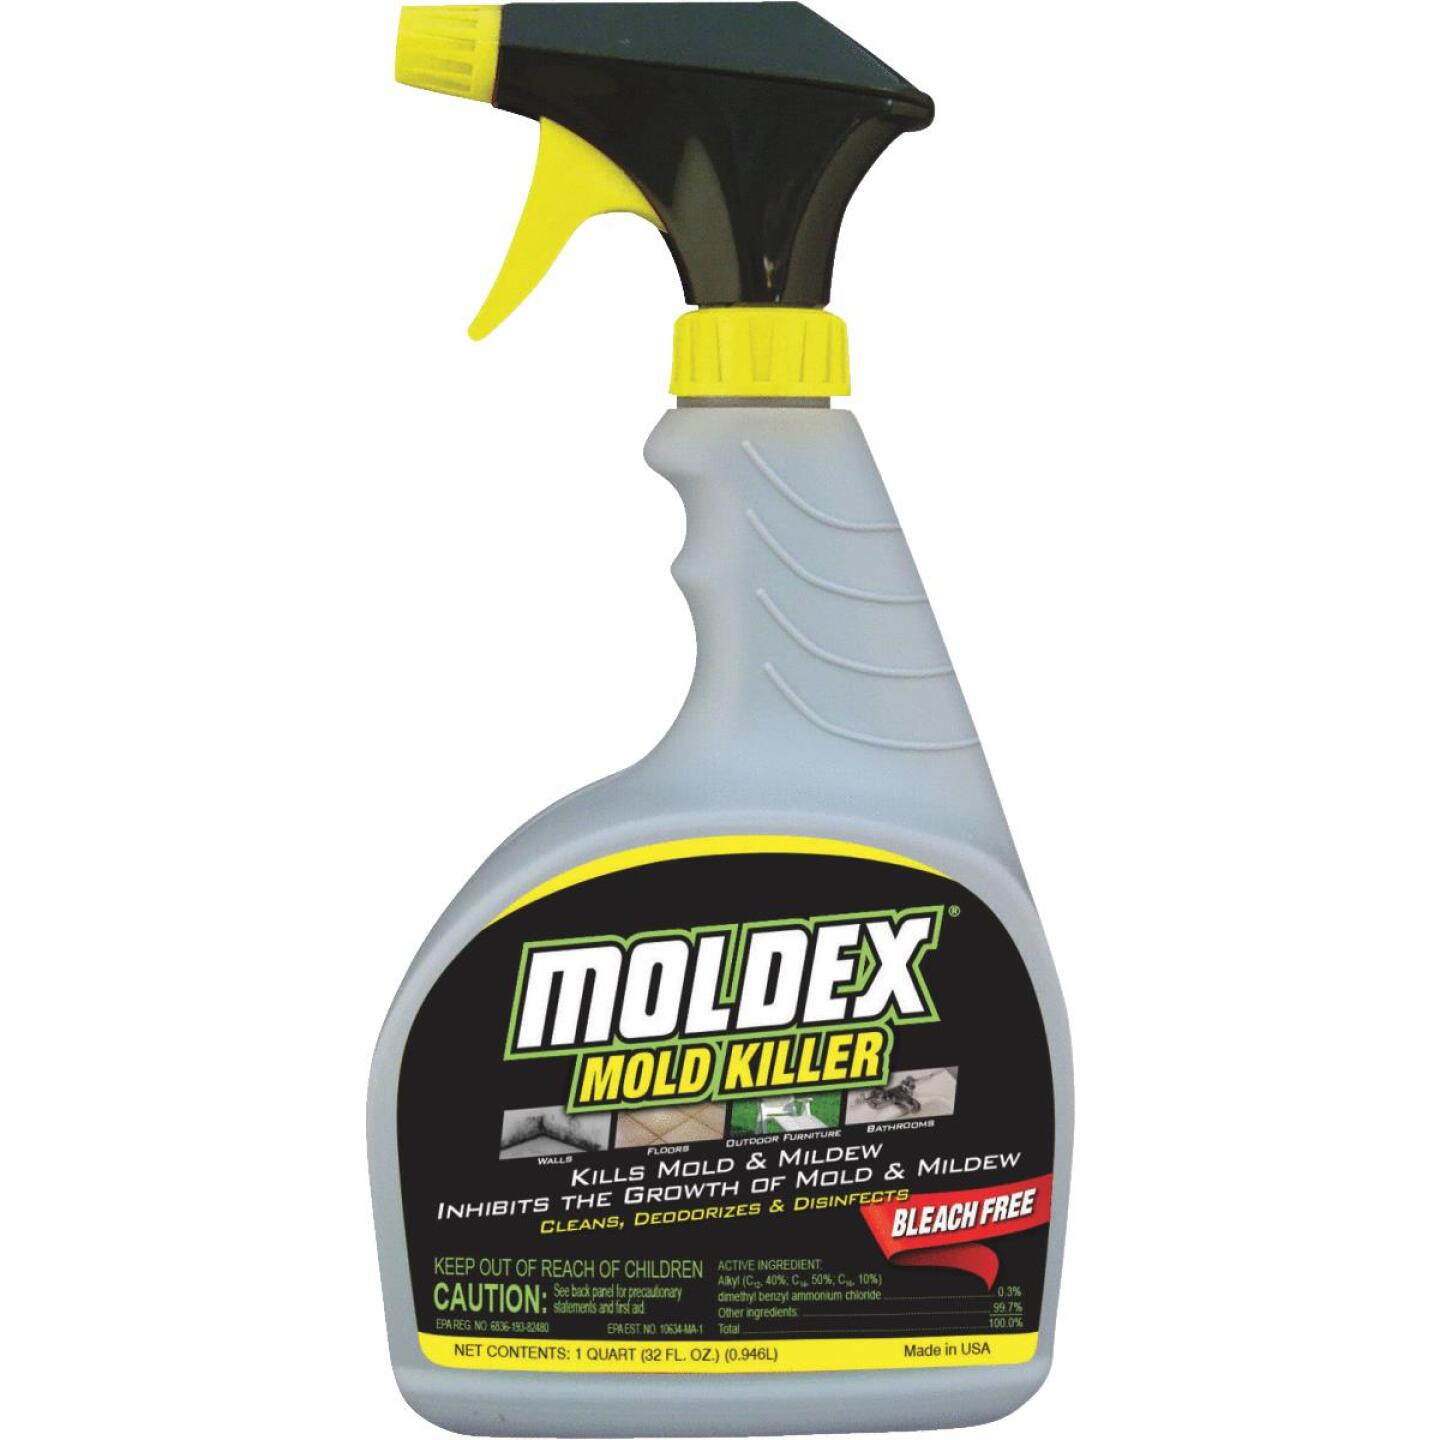 Moldex 32 Oz. Disinfectant Mold Killer Image 1